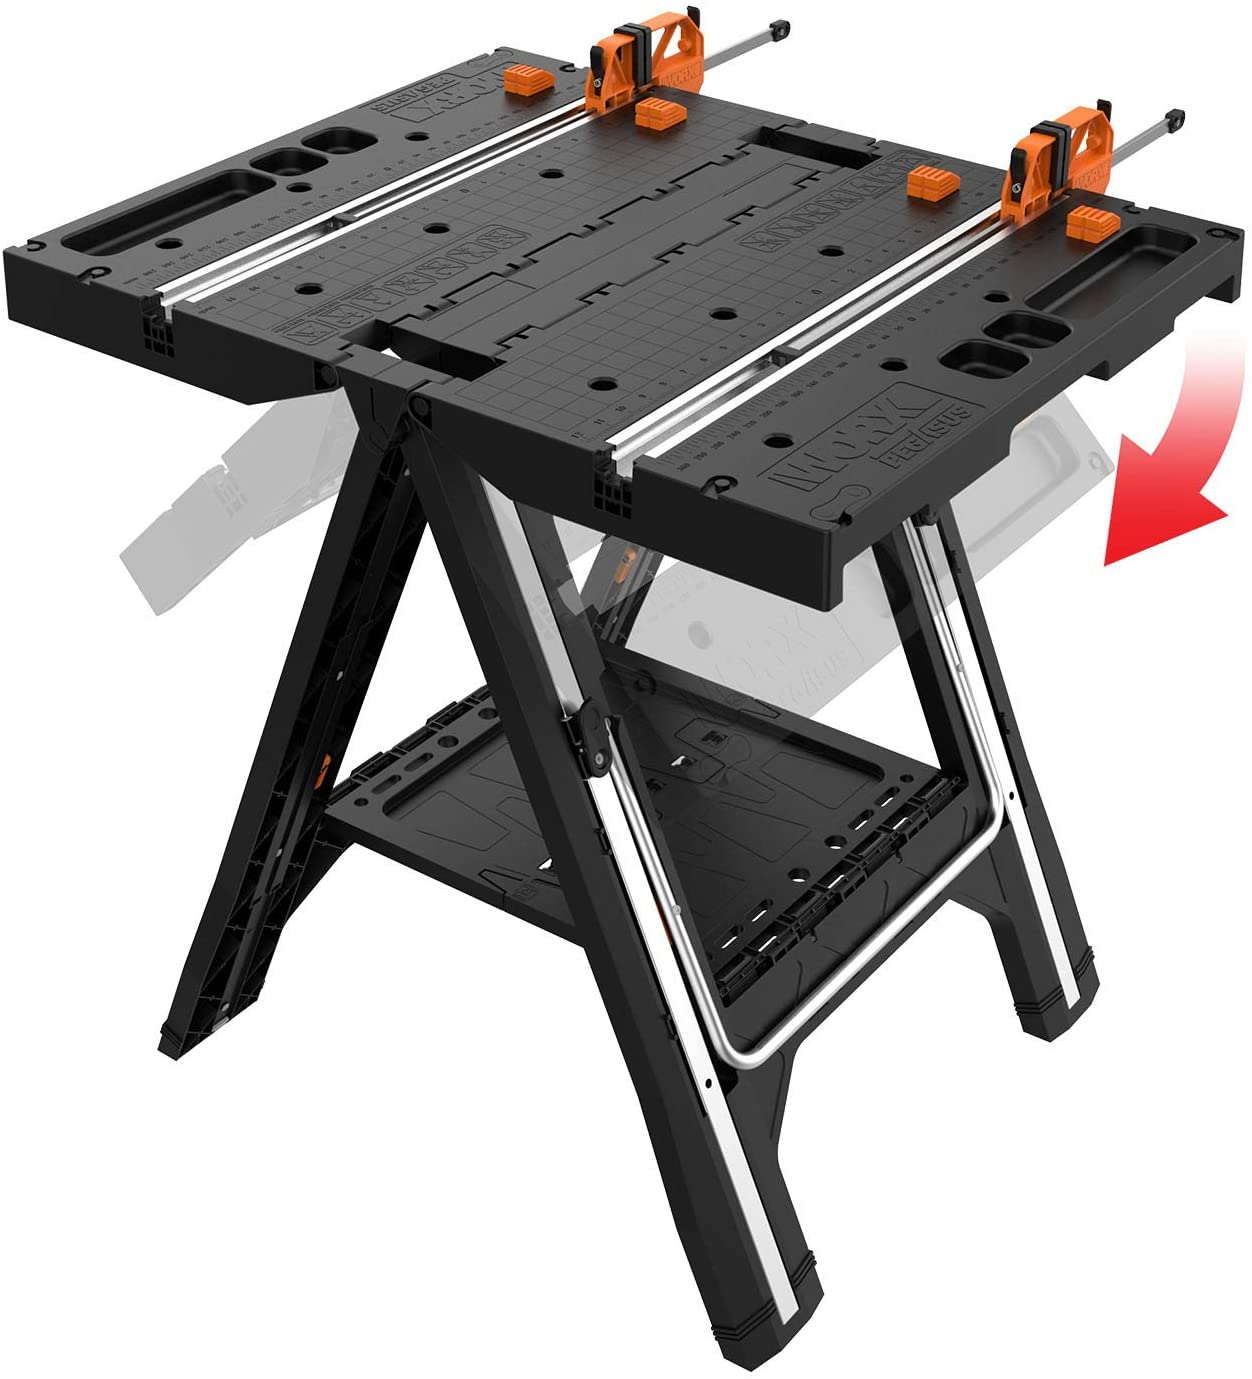 Worx Pegasus Multi-function Work Table